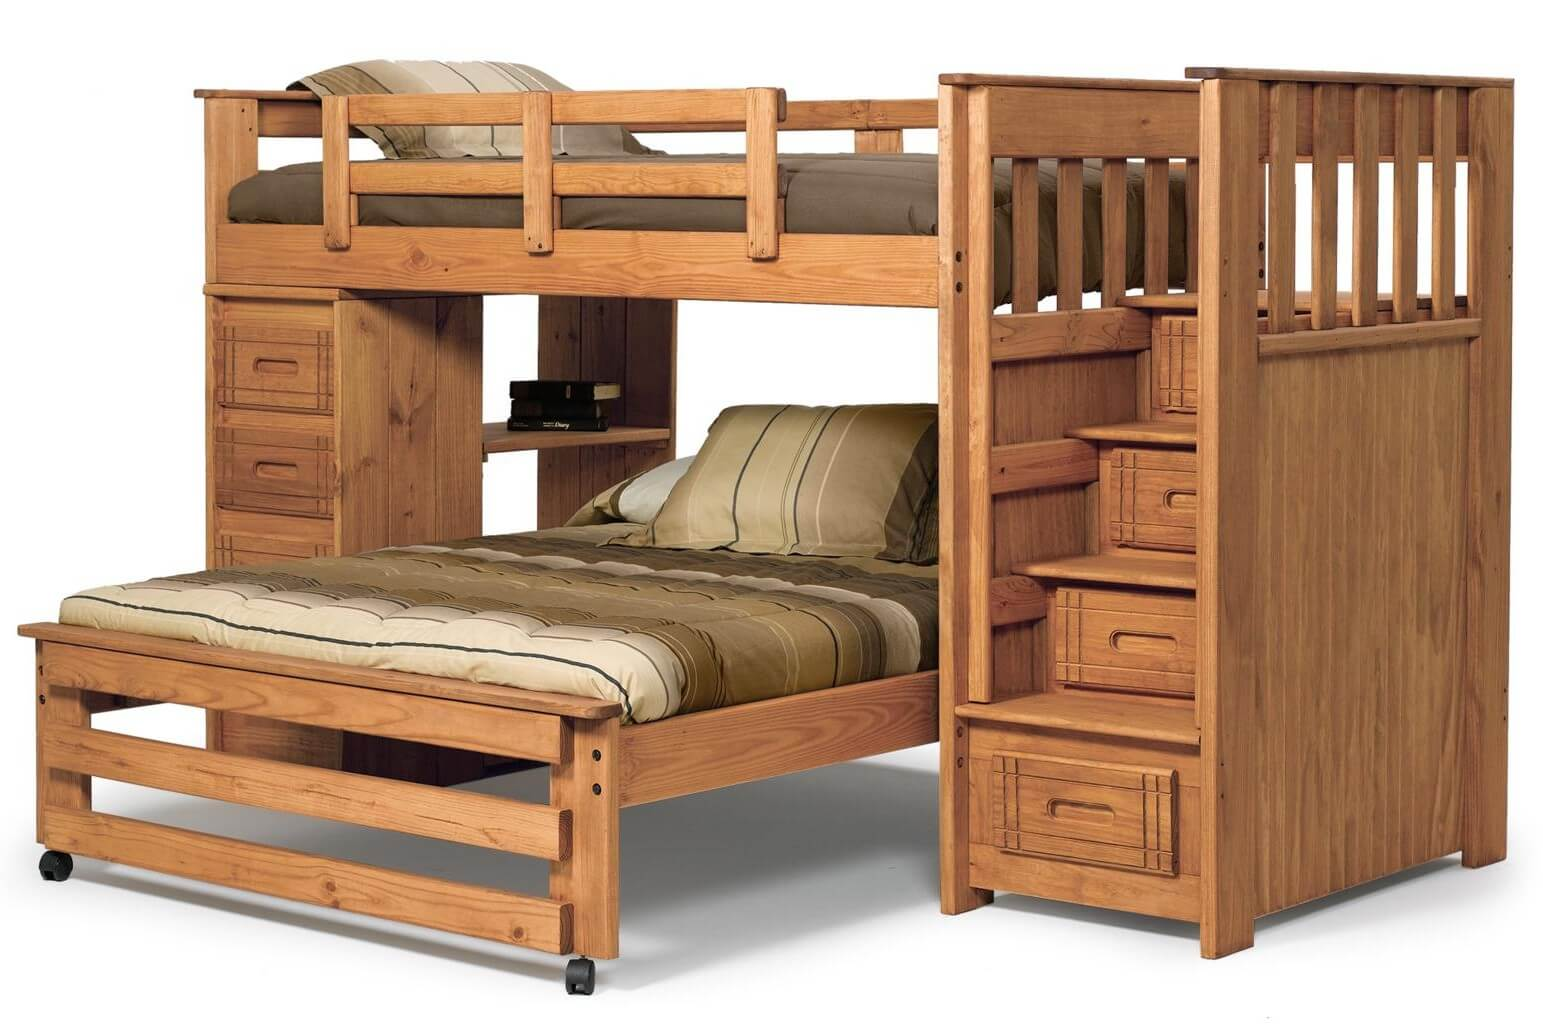 21 Top Wooden L-Shaped Bunk Beds (WITH SPACE-SAVING FEATURES)